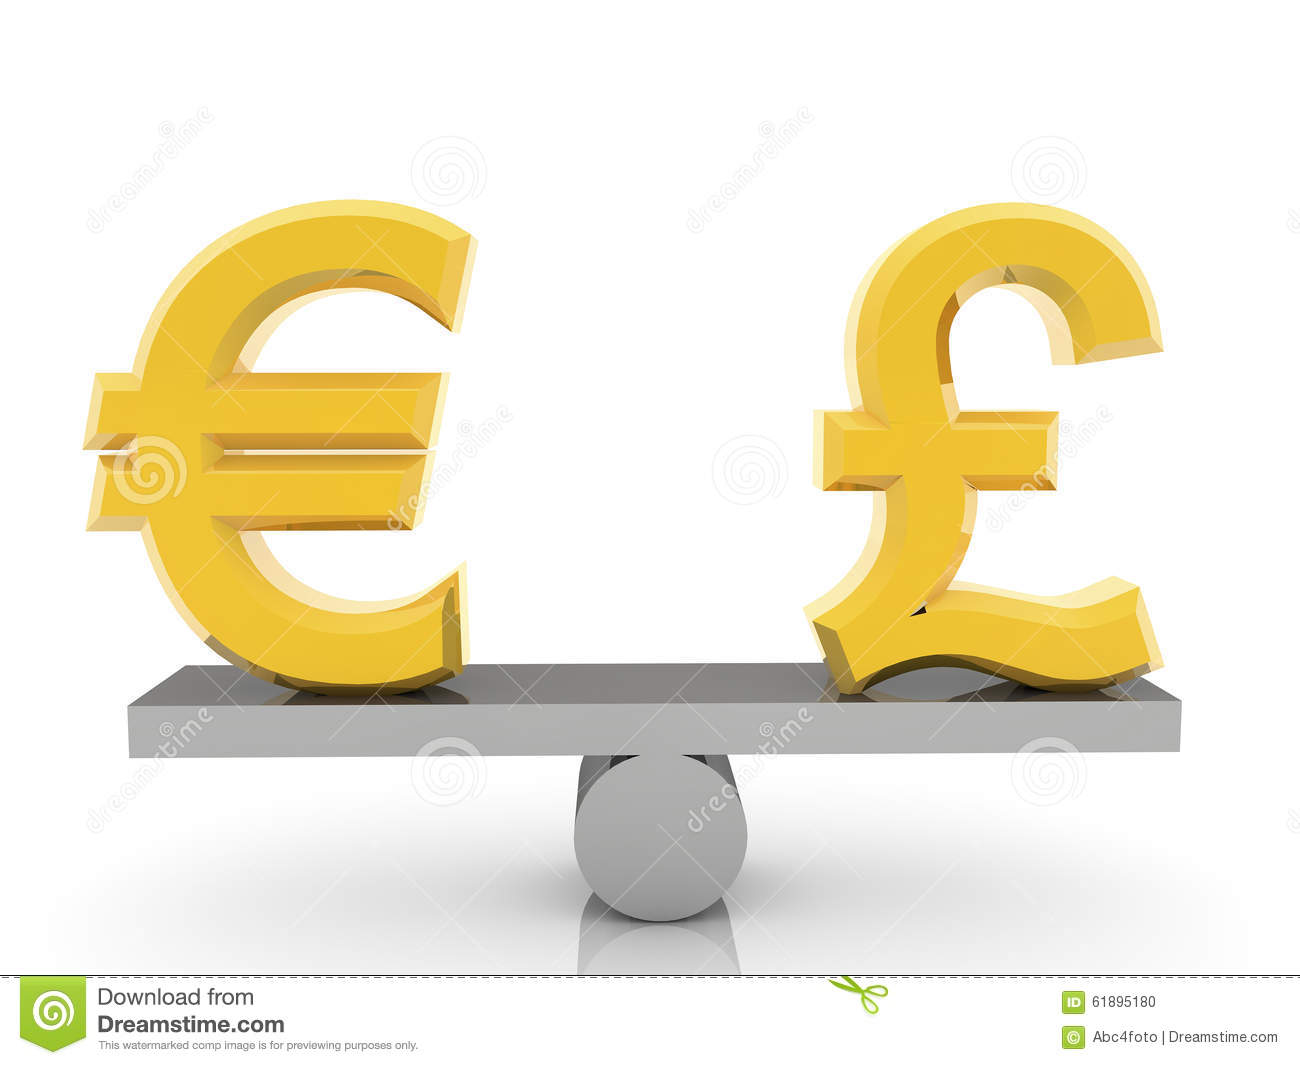 British pound sign and euro sign on seesaw stock photo image of british pound sign and euro sign on seesaw biocorpaavc Image collections